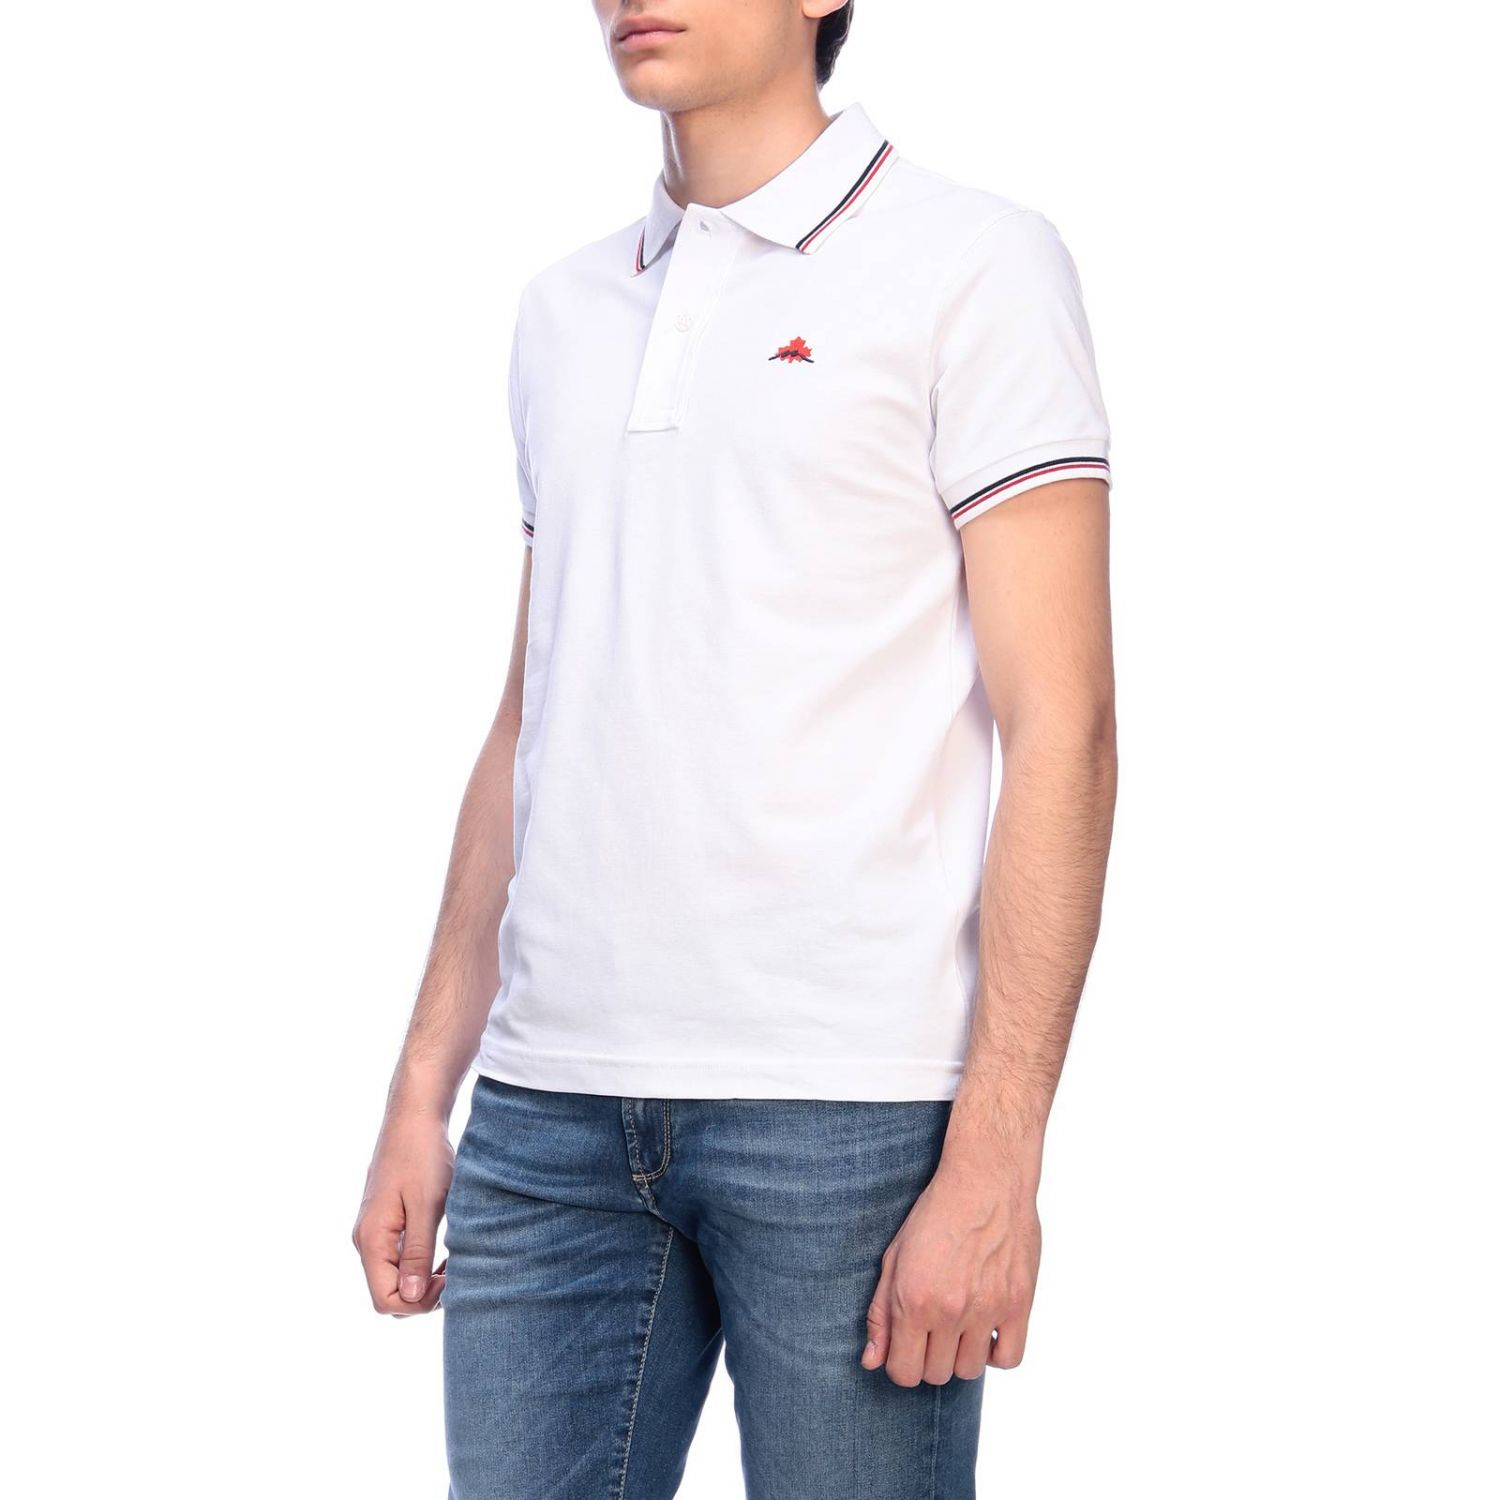 T-shirt men Museum white 2